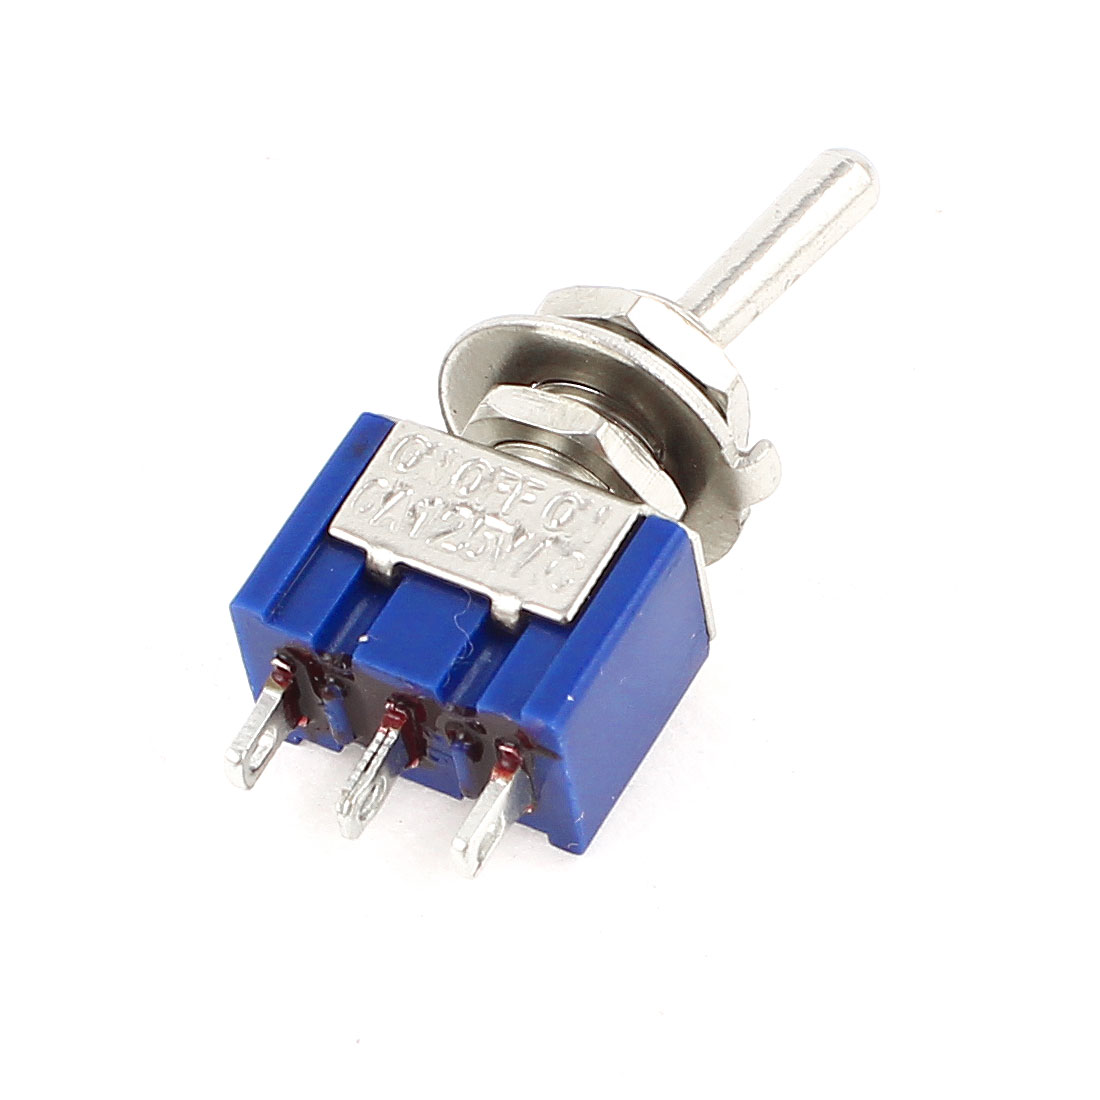 AC125V 6A 3 Pin 2-Position SPDT On/On Self Locking Miniature Toggle Switch